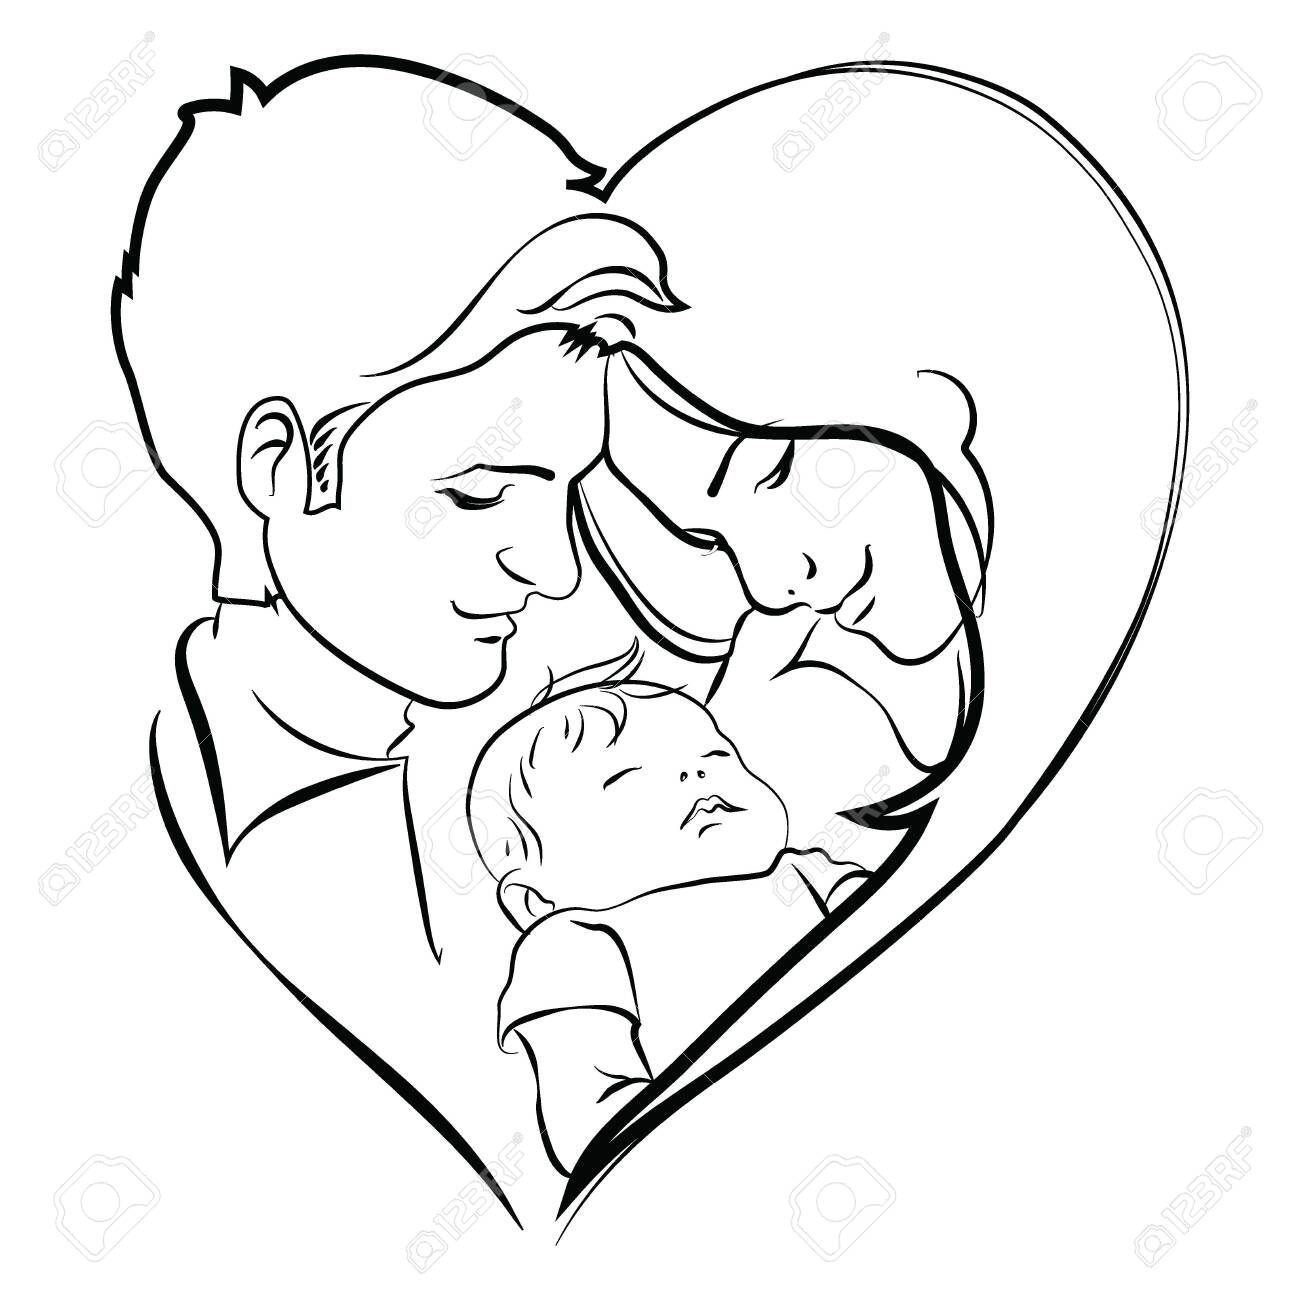 Family With Baby Father And Mother Hug Their Child Black And Royalty Free Cliparts Vectors And Stock Illustration Image 130654193